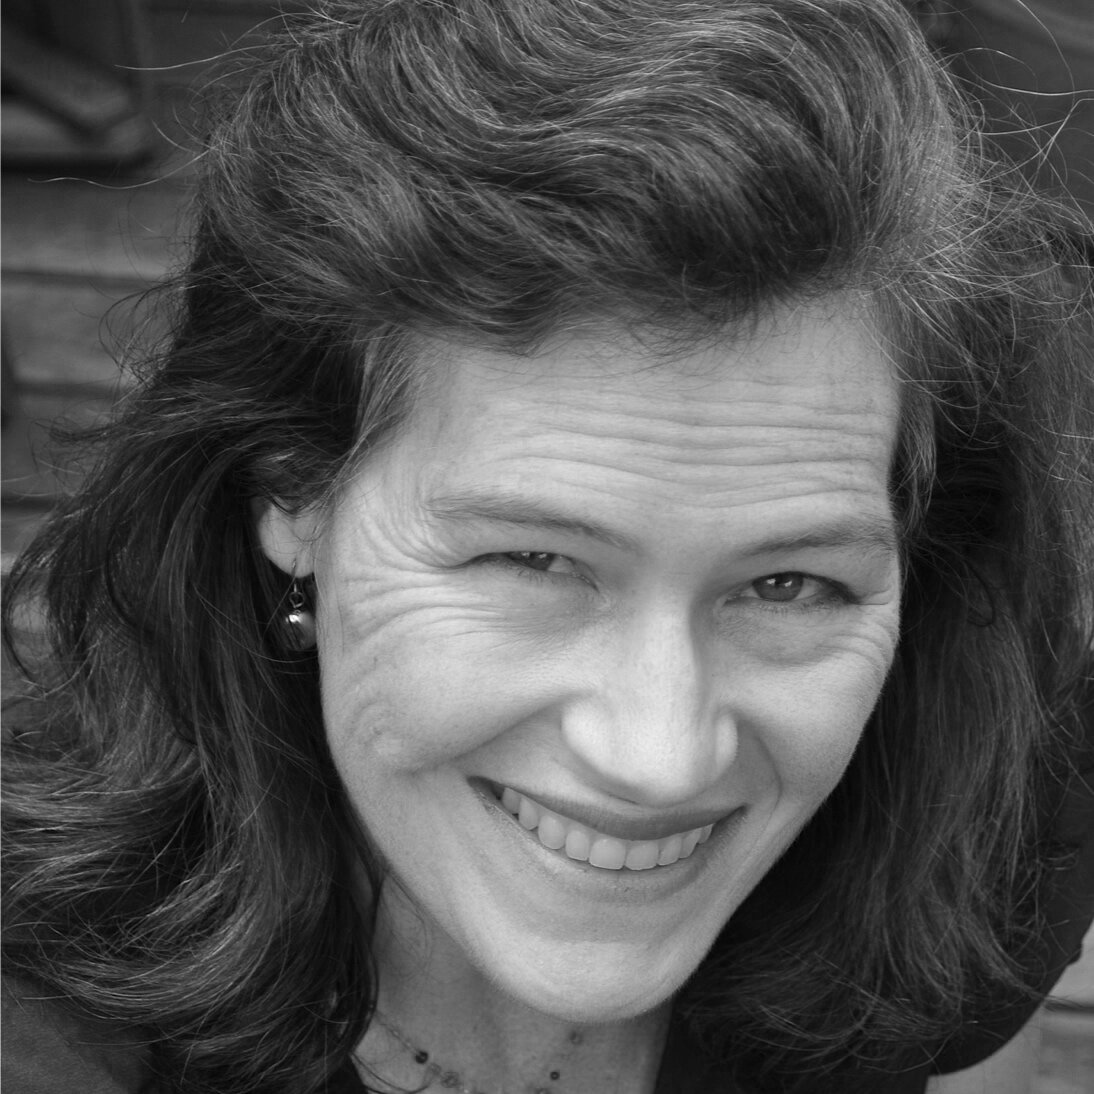 Elizabeth Gaffney - Her first novel, Metropolis, a Barnes and Noble Discover Great New Writers selection, was published by Random House in 2005. Her second novel, When the World Was Young, was published by Random House in 2014. She won the 2019 Lawrence Prize for Fiction. Her short stories have appeared in many literary magazines, and she has translated four books from German. Gaffney graduated with honors from Vassar College and holds an M.F.A. in fiction from Brooklyn College; she also studied philosophy and German at Ludwig-Maximillian University in Munich. She has been a resident artist at Yaddo, the MacDowell Colony and the Blue Mountain Center. She also teaches fiction and serves as the editor at large of the literary magazine A Public Space. She lives in Brooklyn with her husband, the neurologist Alex Boro, and their two daughters.